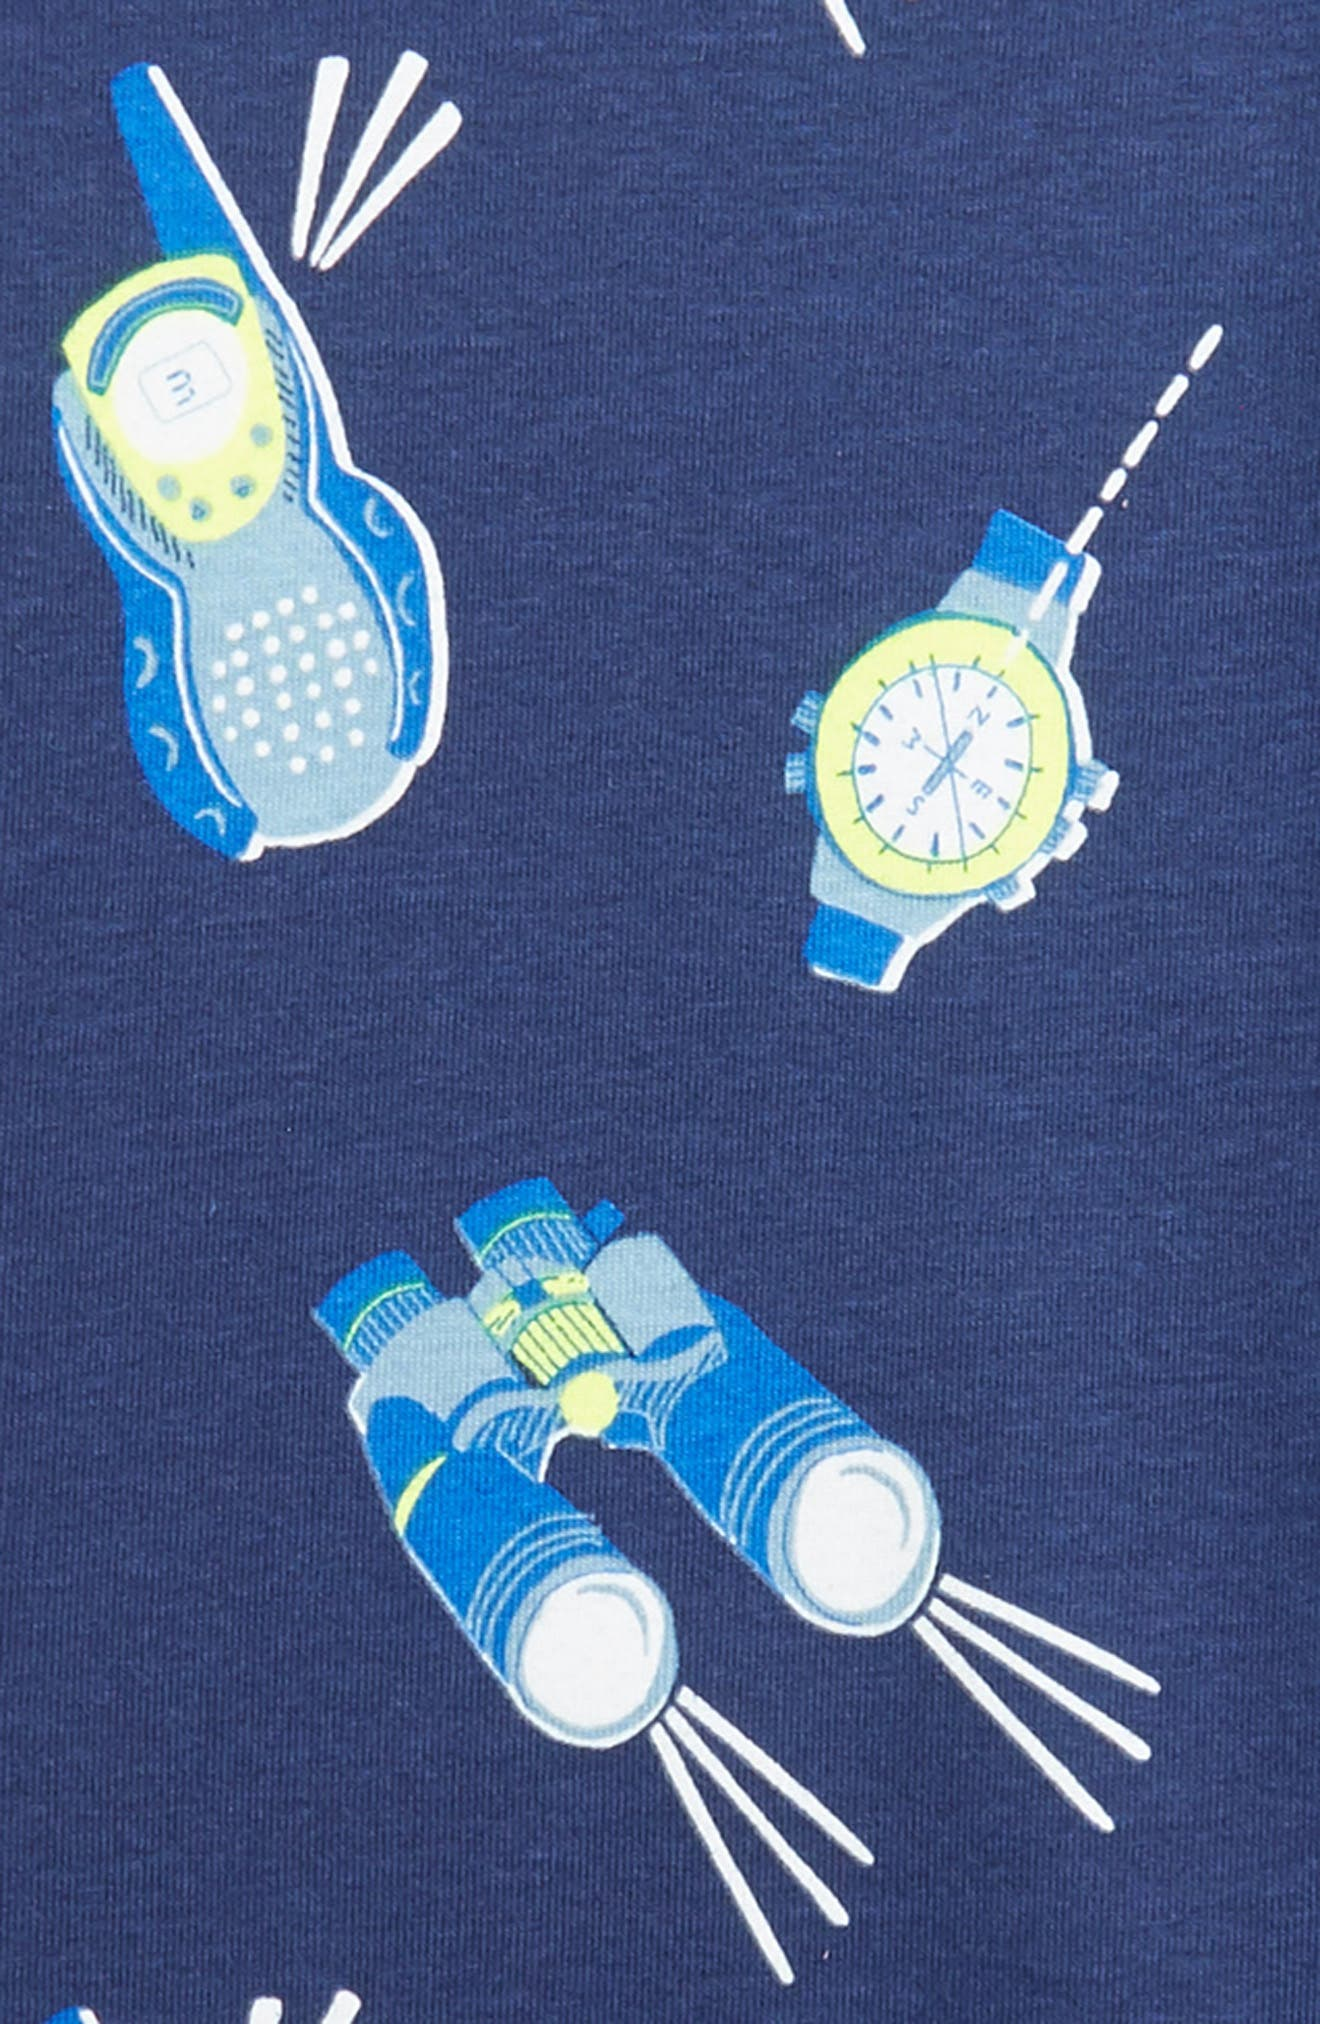 Mini Boden Glow in the Dark Fitted Two-Piece Pajamas,                             Alternate thumbnail 3, color,                             BLUE COLLEGE WALKIE TALKIE